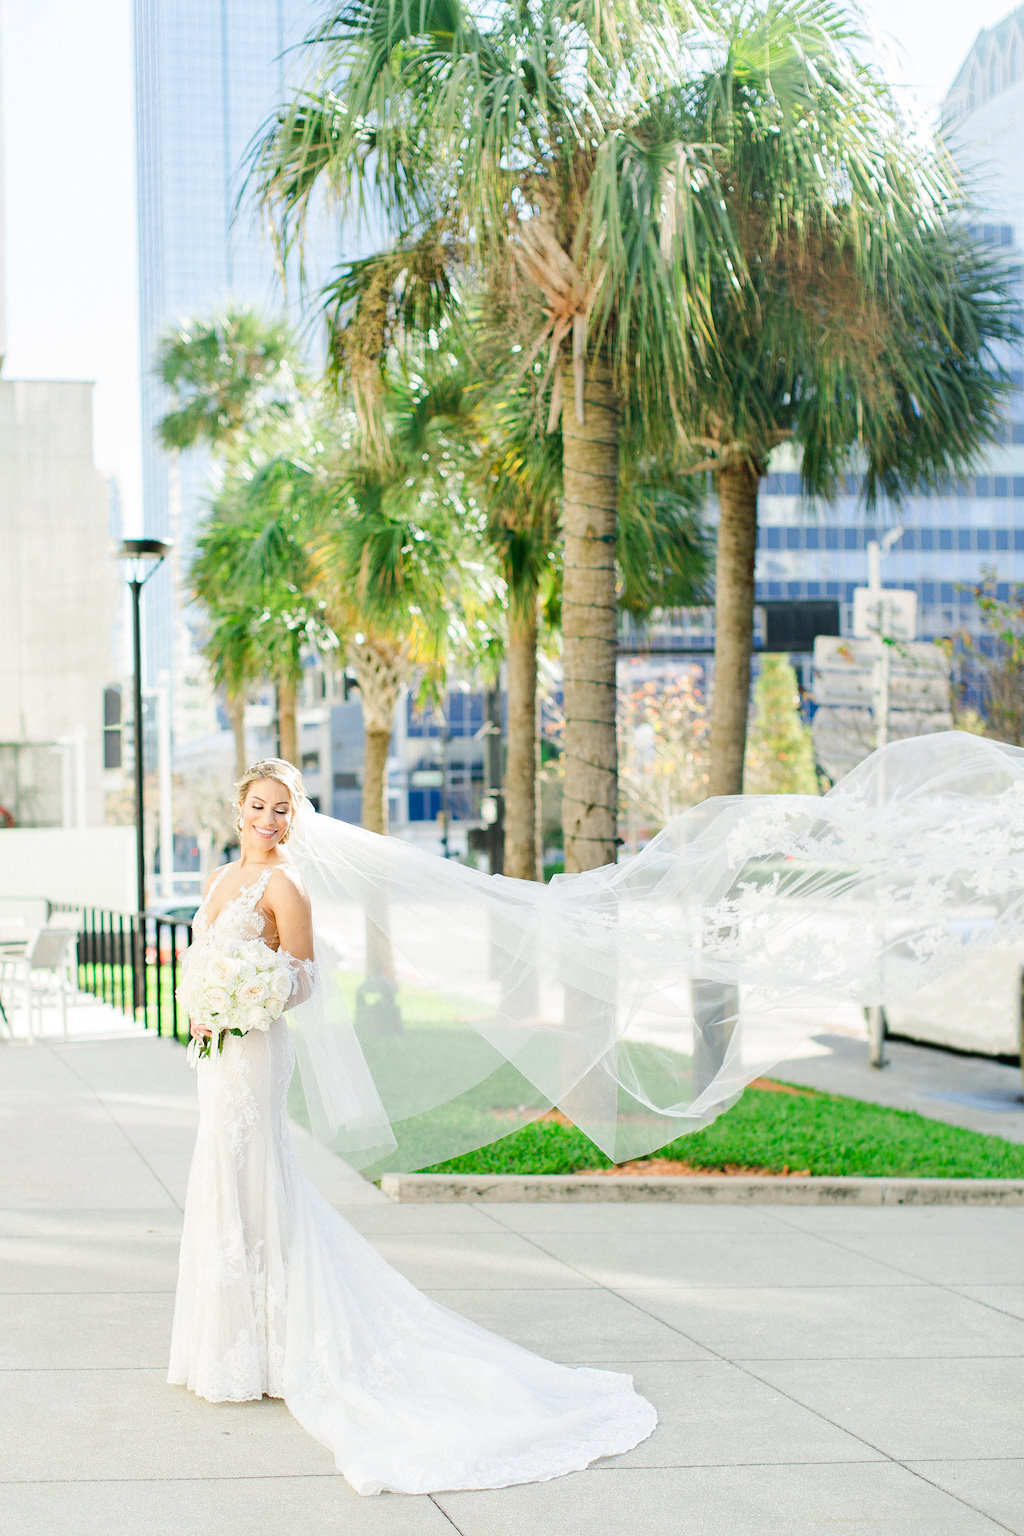 Florida Outdoor Creative Wedding Portrait with Veil Blowing in Wind | Downtown Tampa